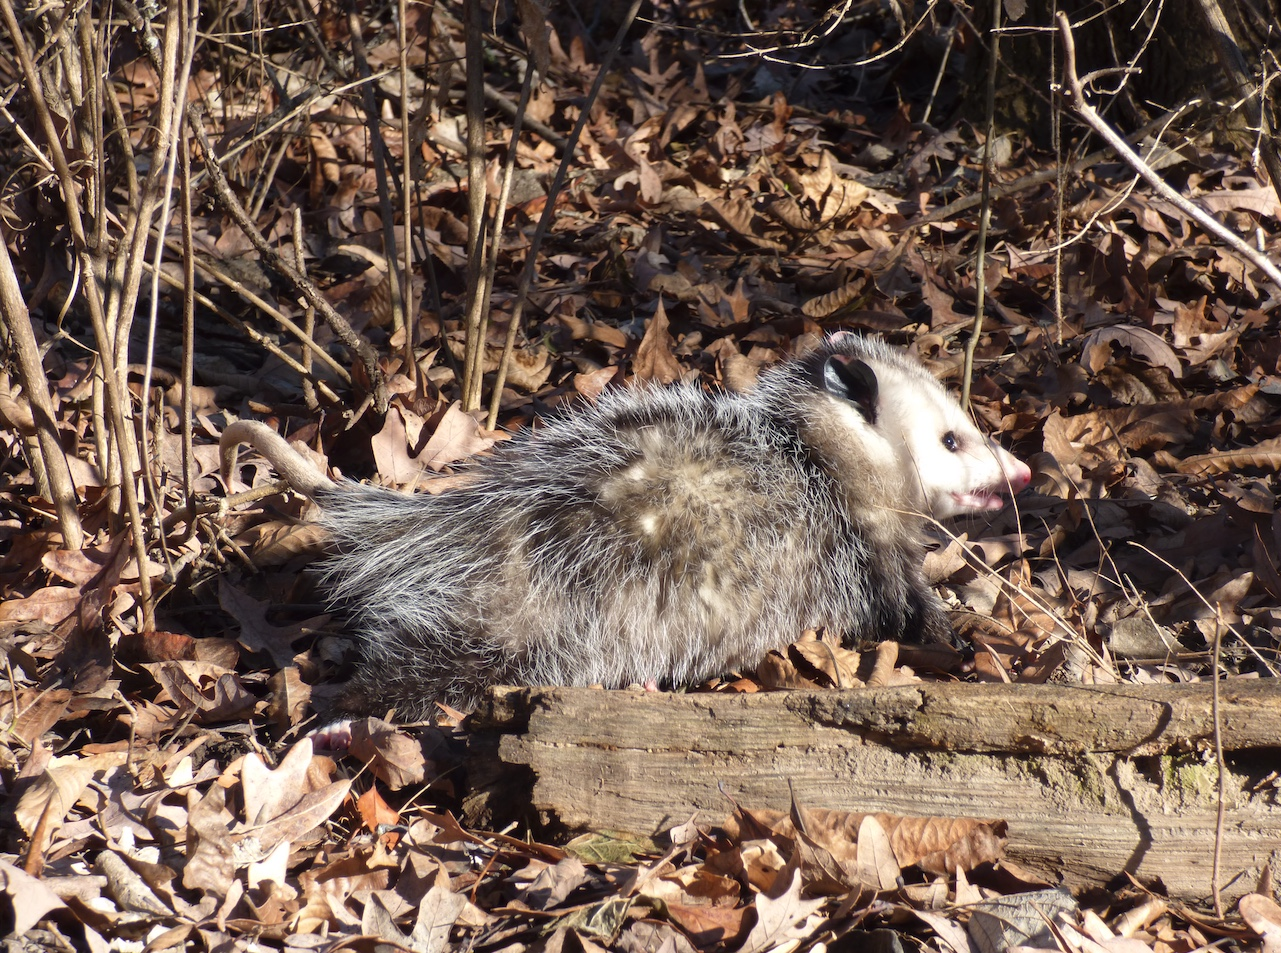 Opossum sitting next to a log in the woods.